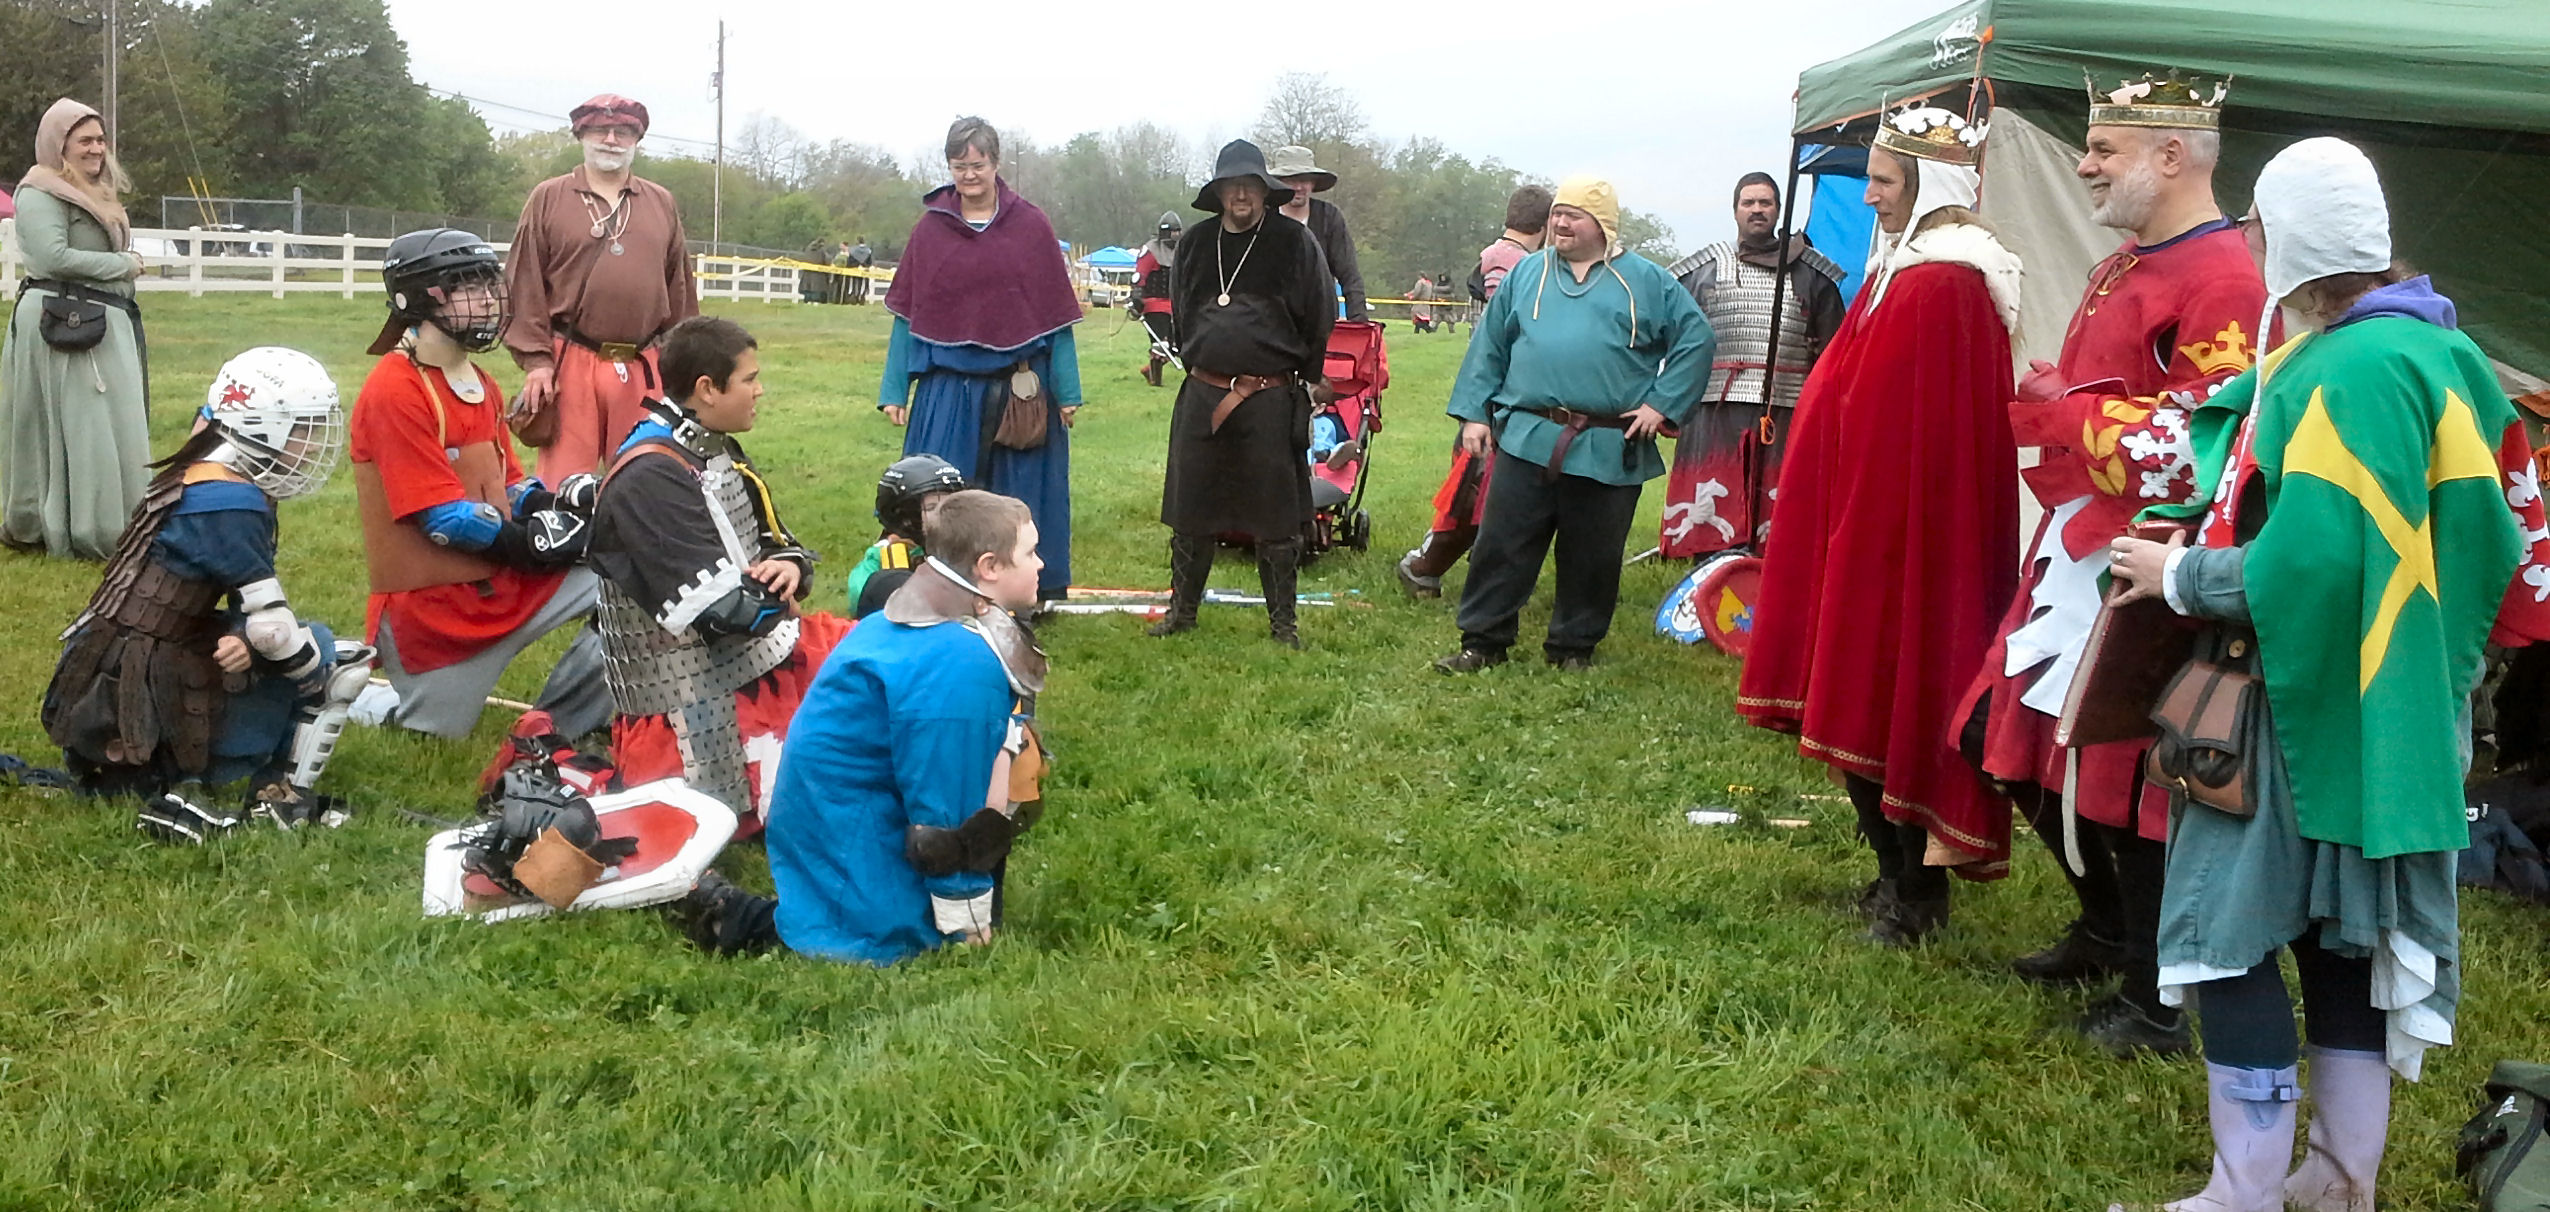 Their Majesties address the fighters at the start of the tourney. Photo by Arianna of Wynthrope.